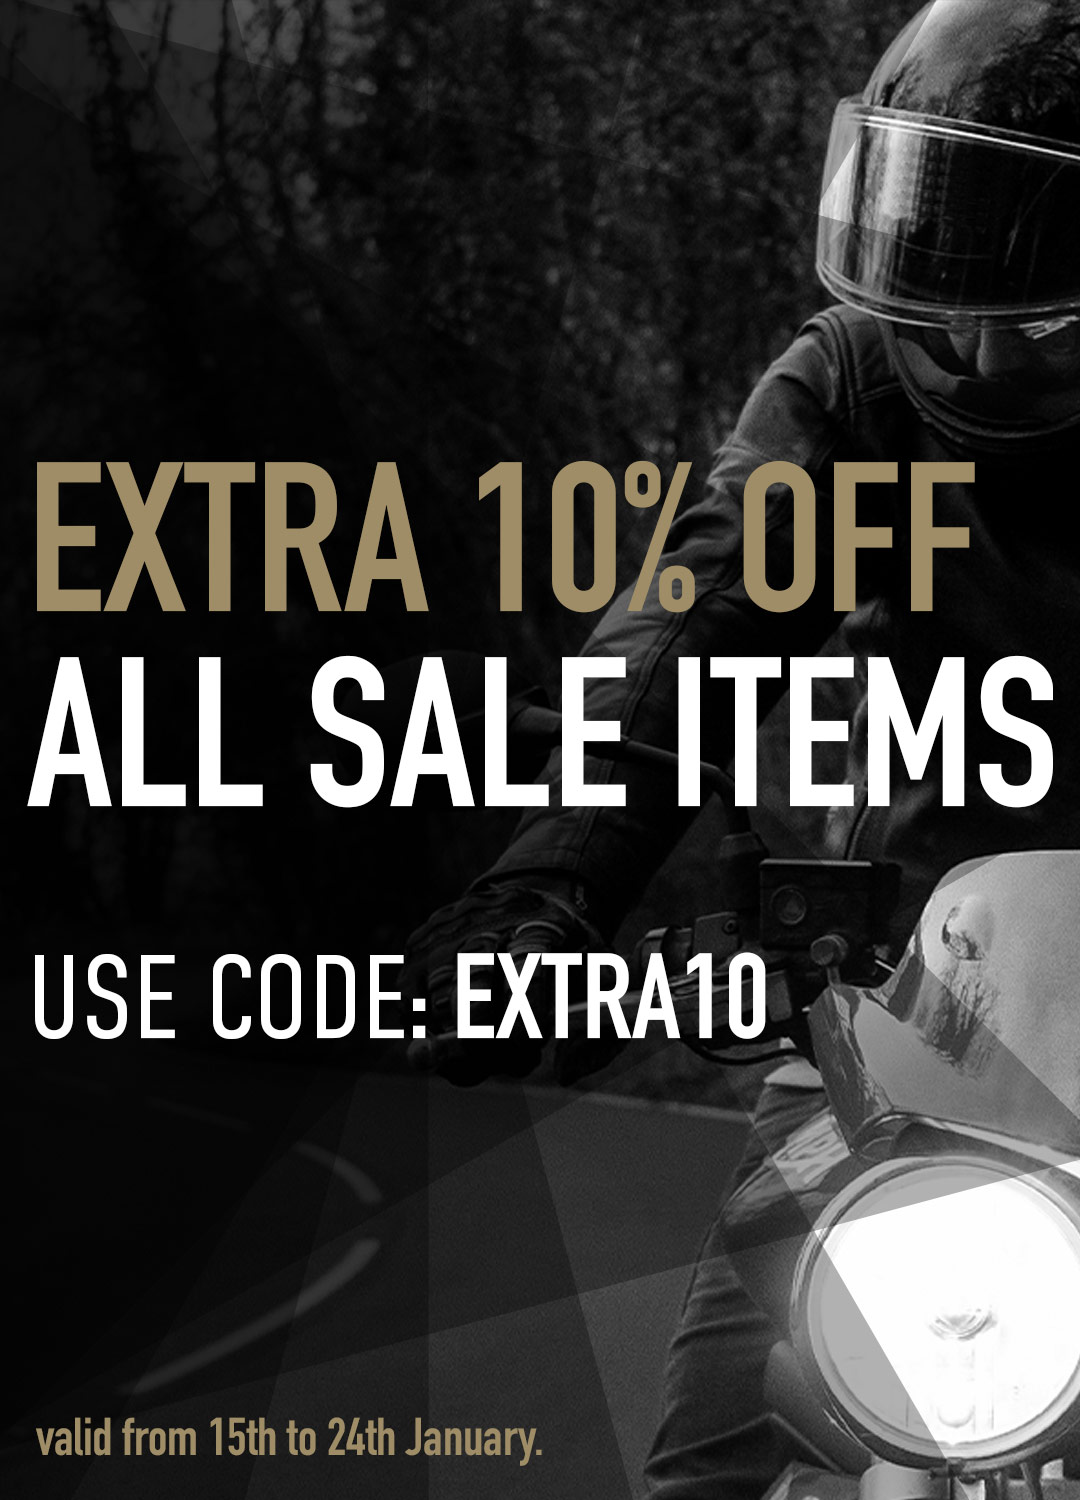 motorcycle clothing sale extra 10% off sale items